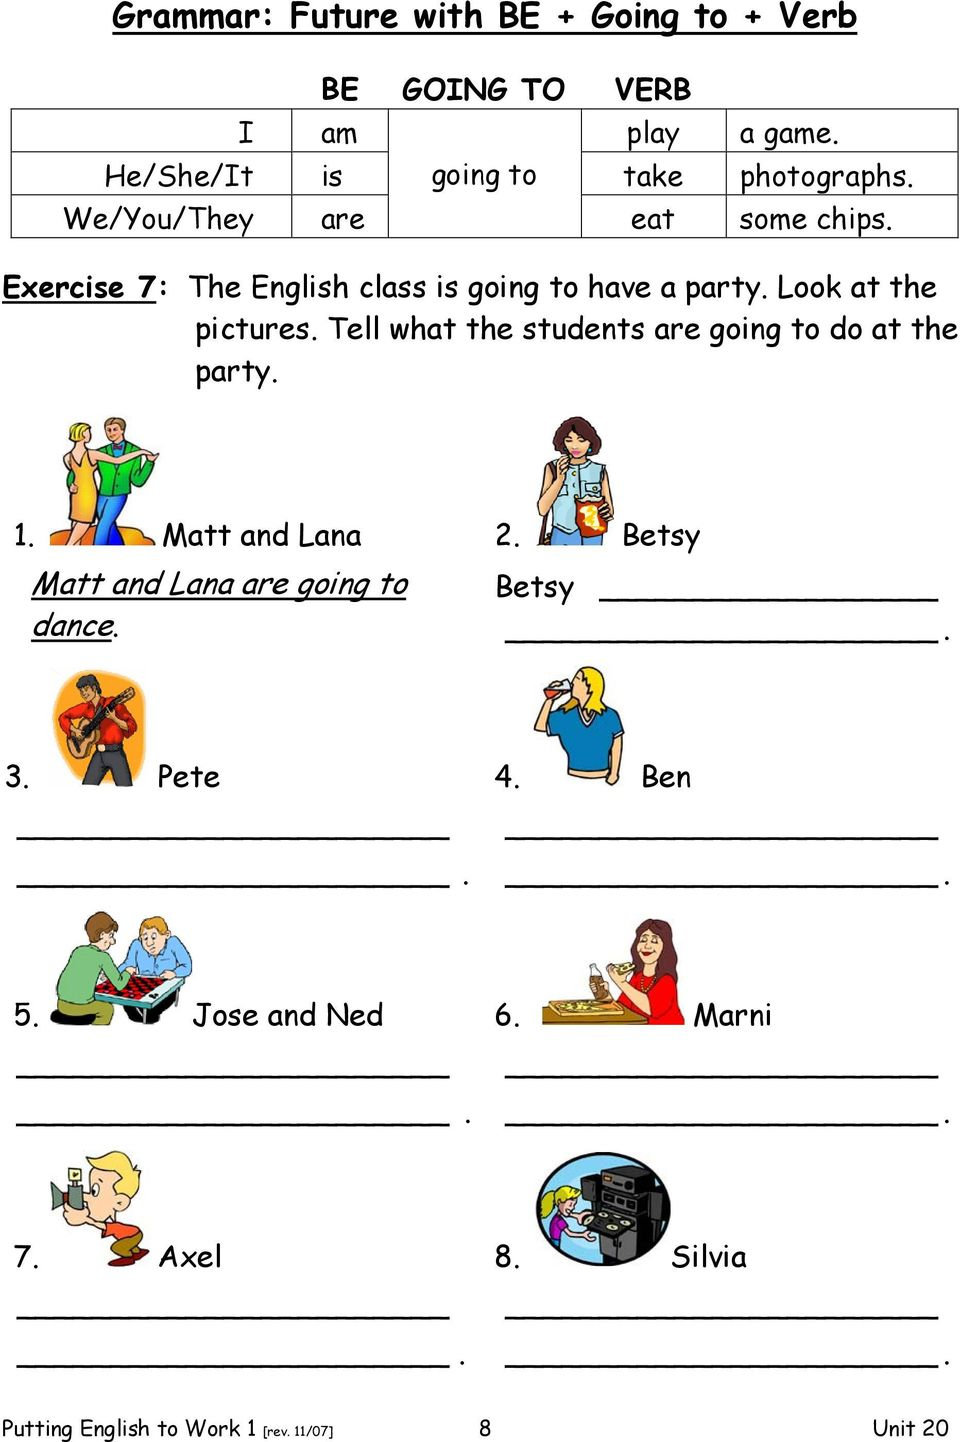 Exercise 7: The English class is going to have a party. Look at the pictures.